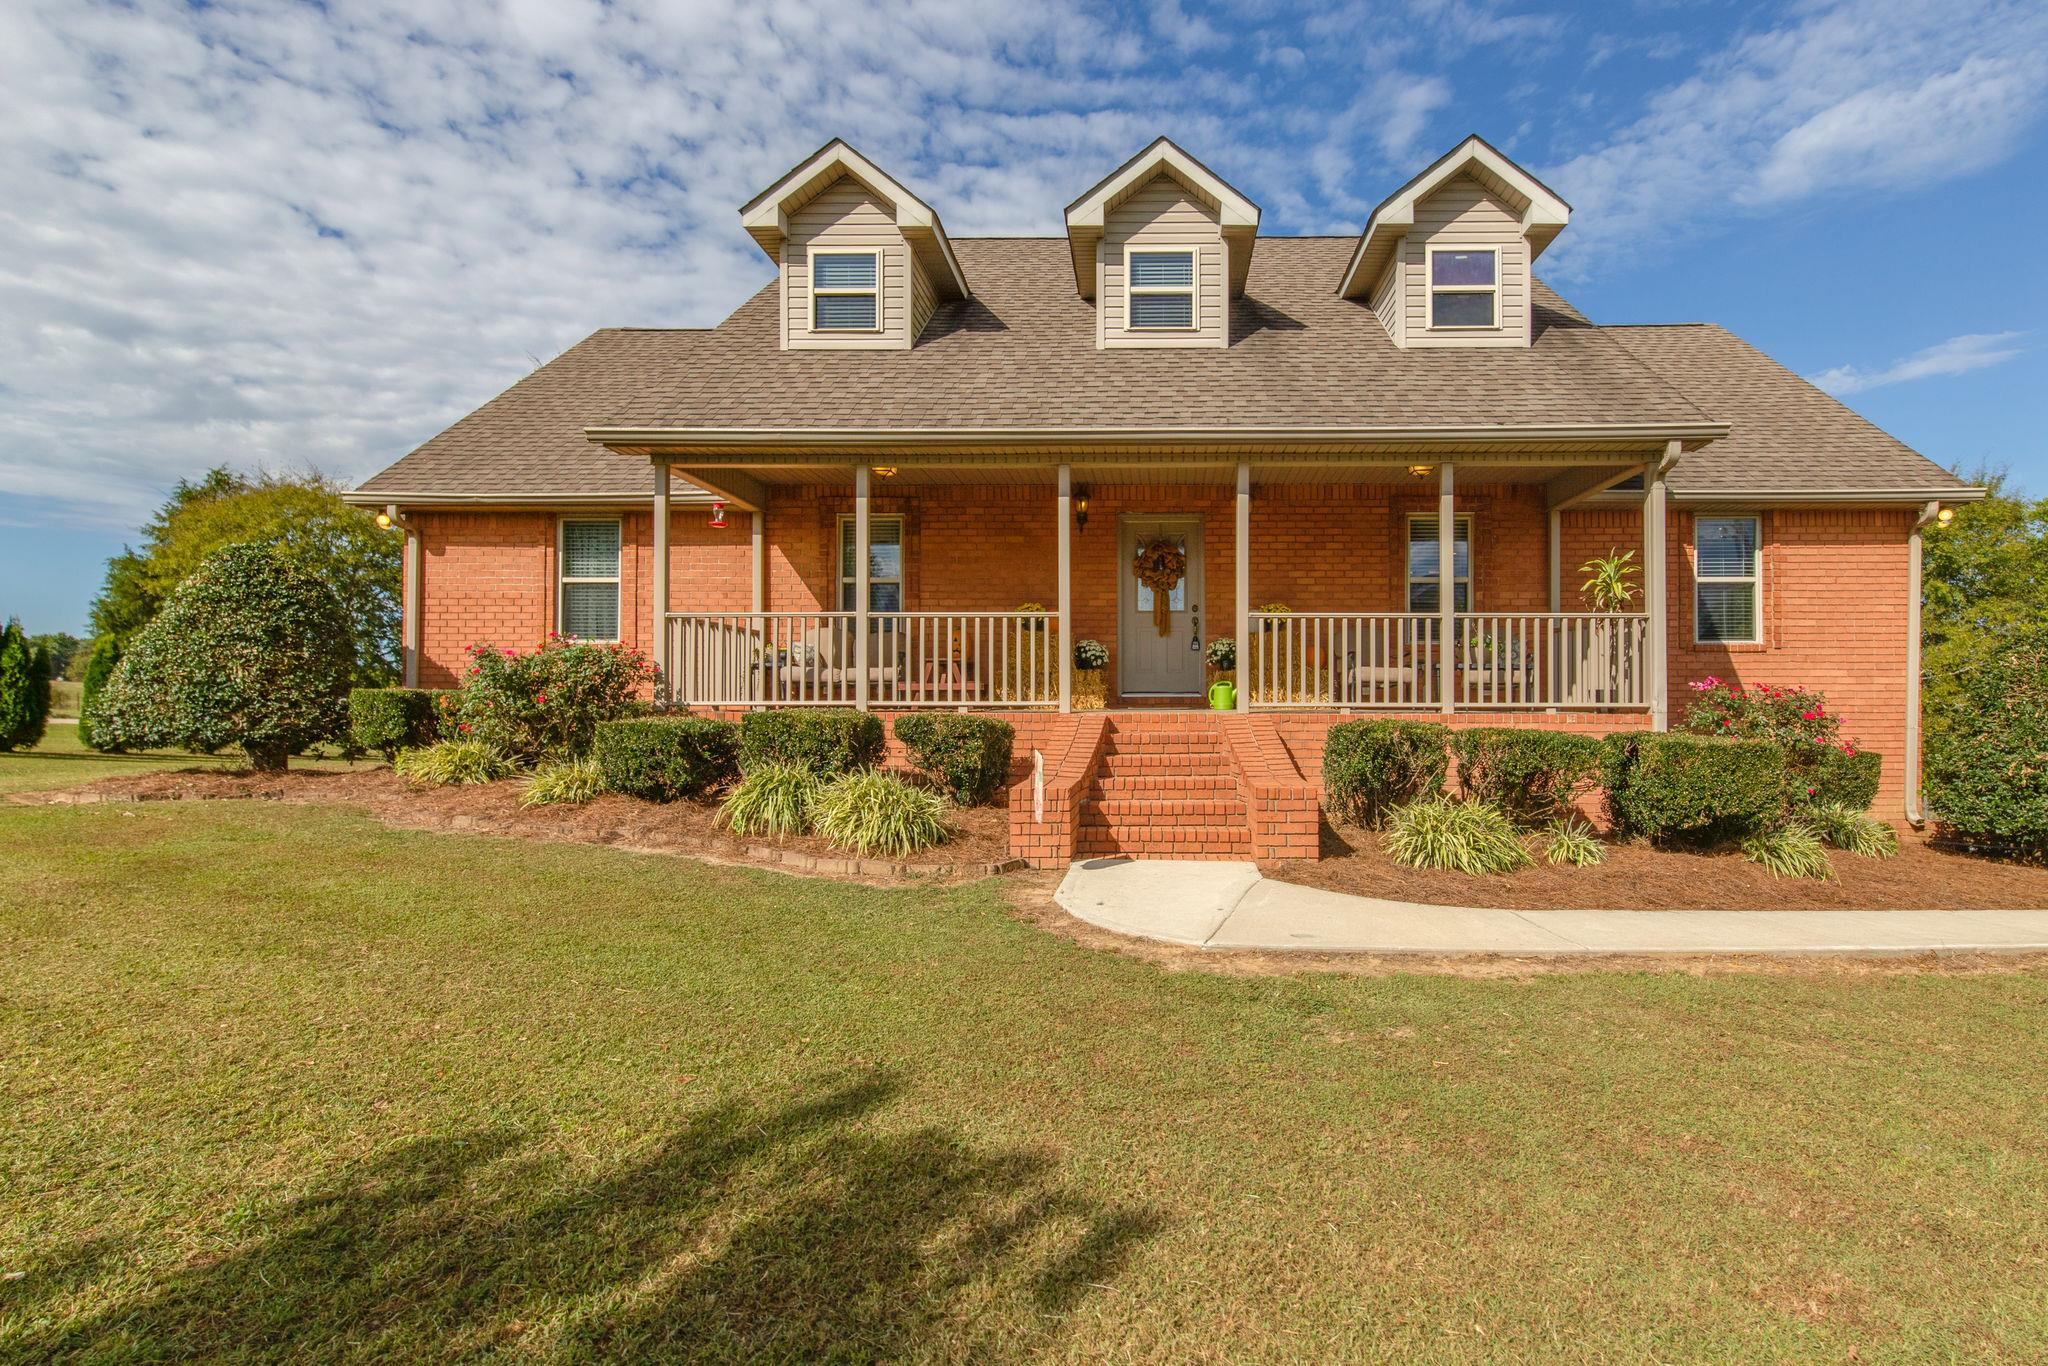 48 Fox Run Ln, Carthage, TN 37030 - Carthage, TN real estate listing